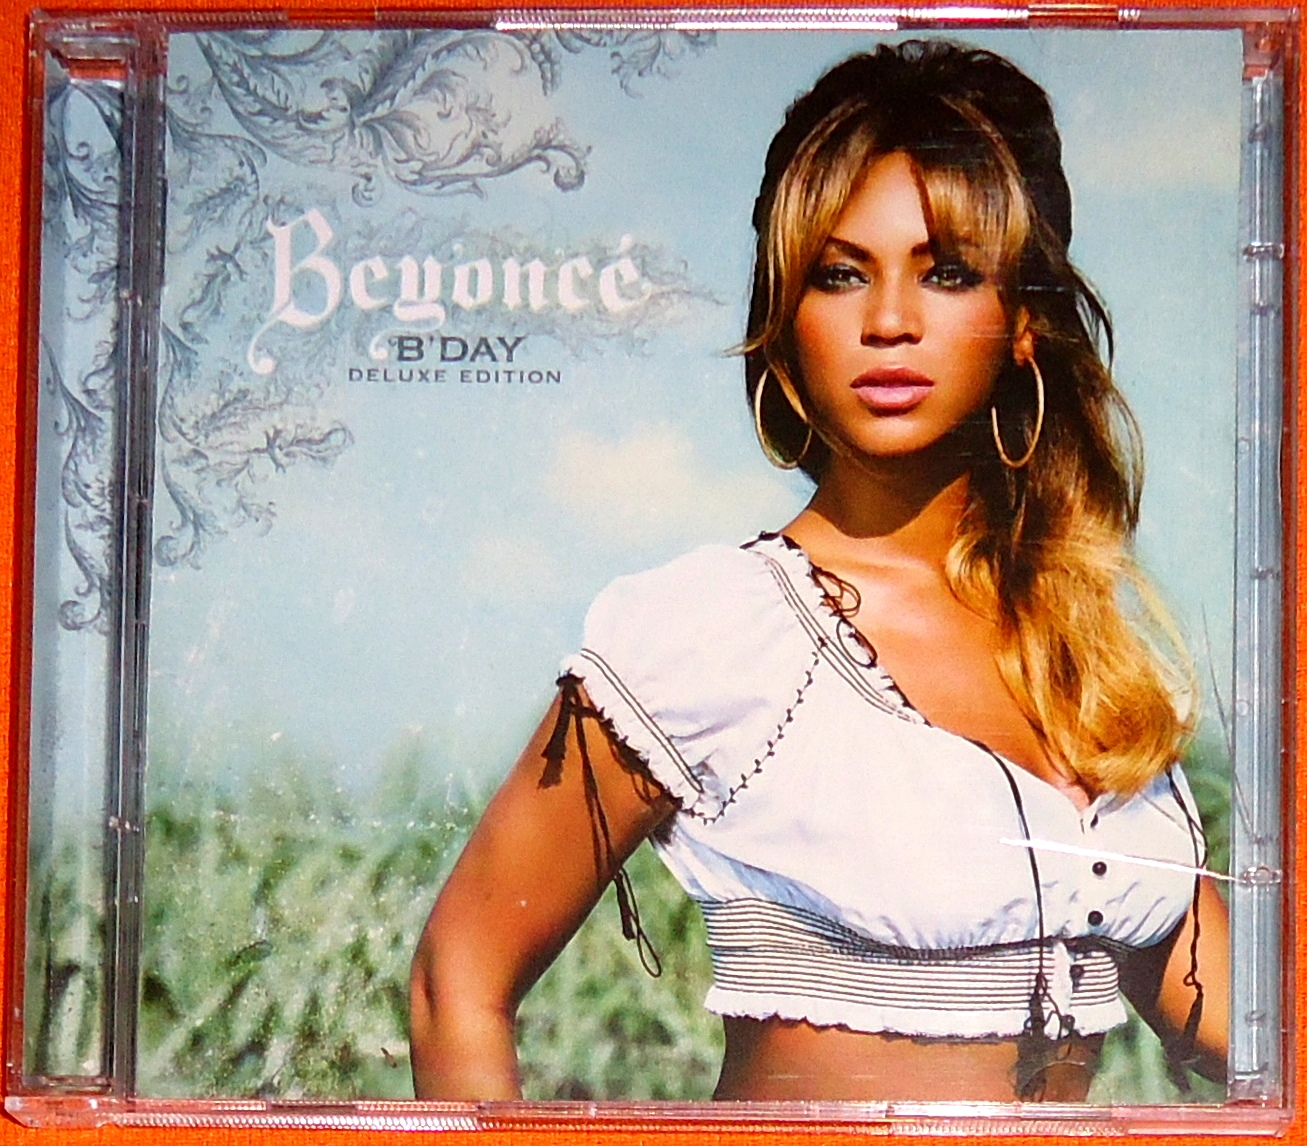 My Collection: Beyoncé » B'Day (Deluxe Edition) (CD+DVD ...